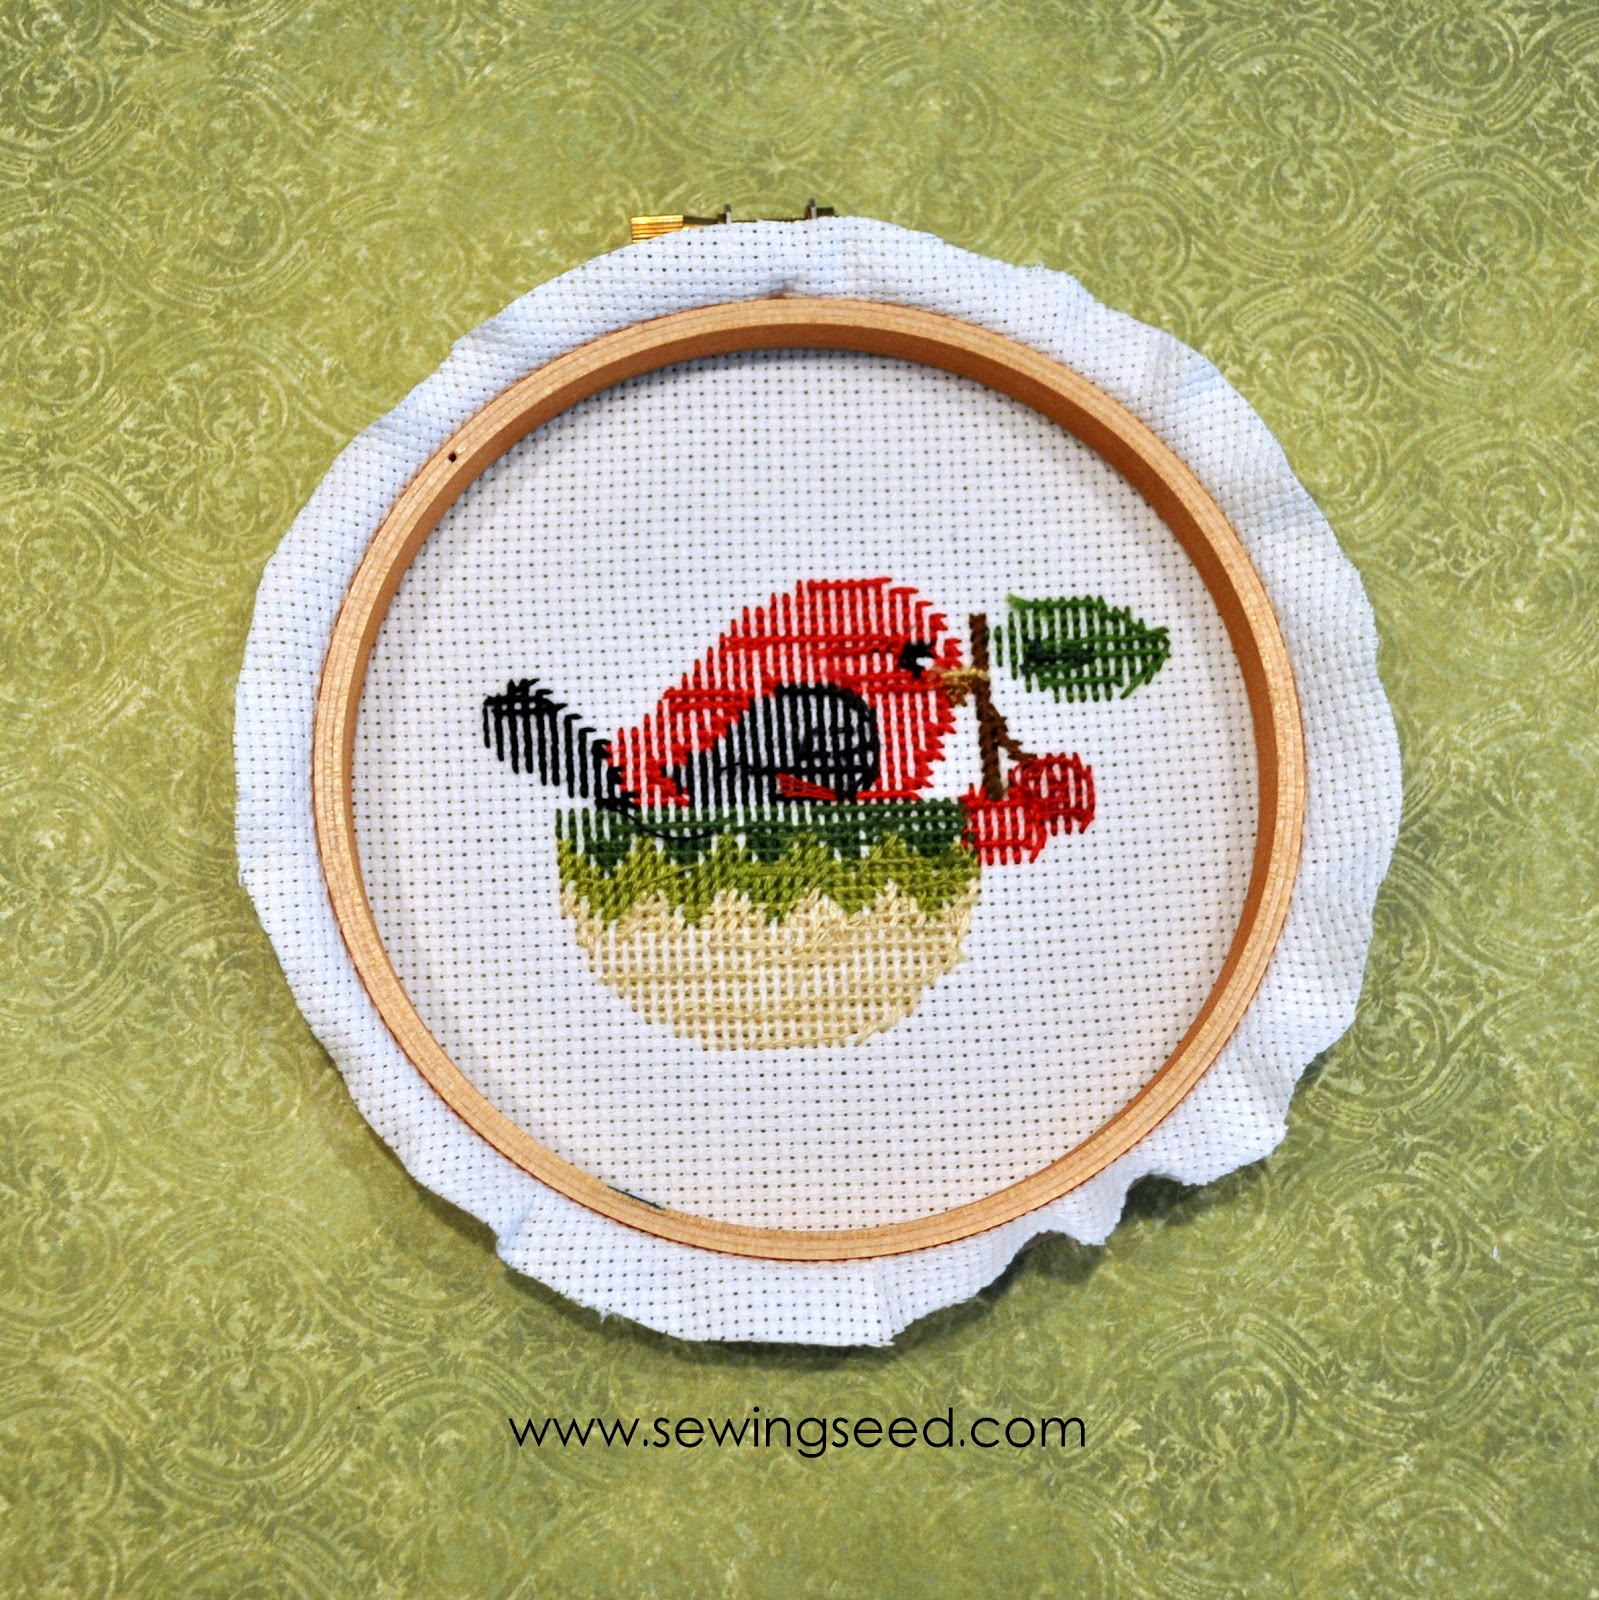 Sewingseed: Framing your needlework in a hoop